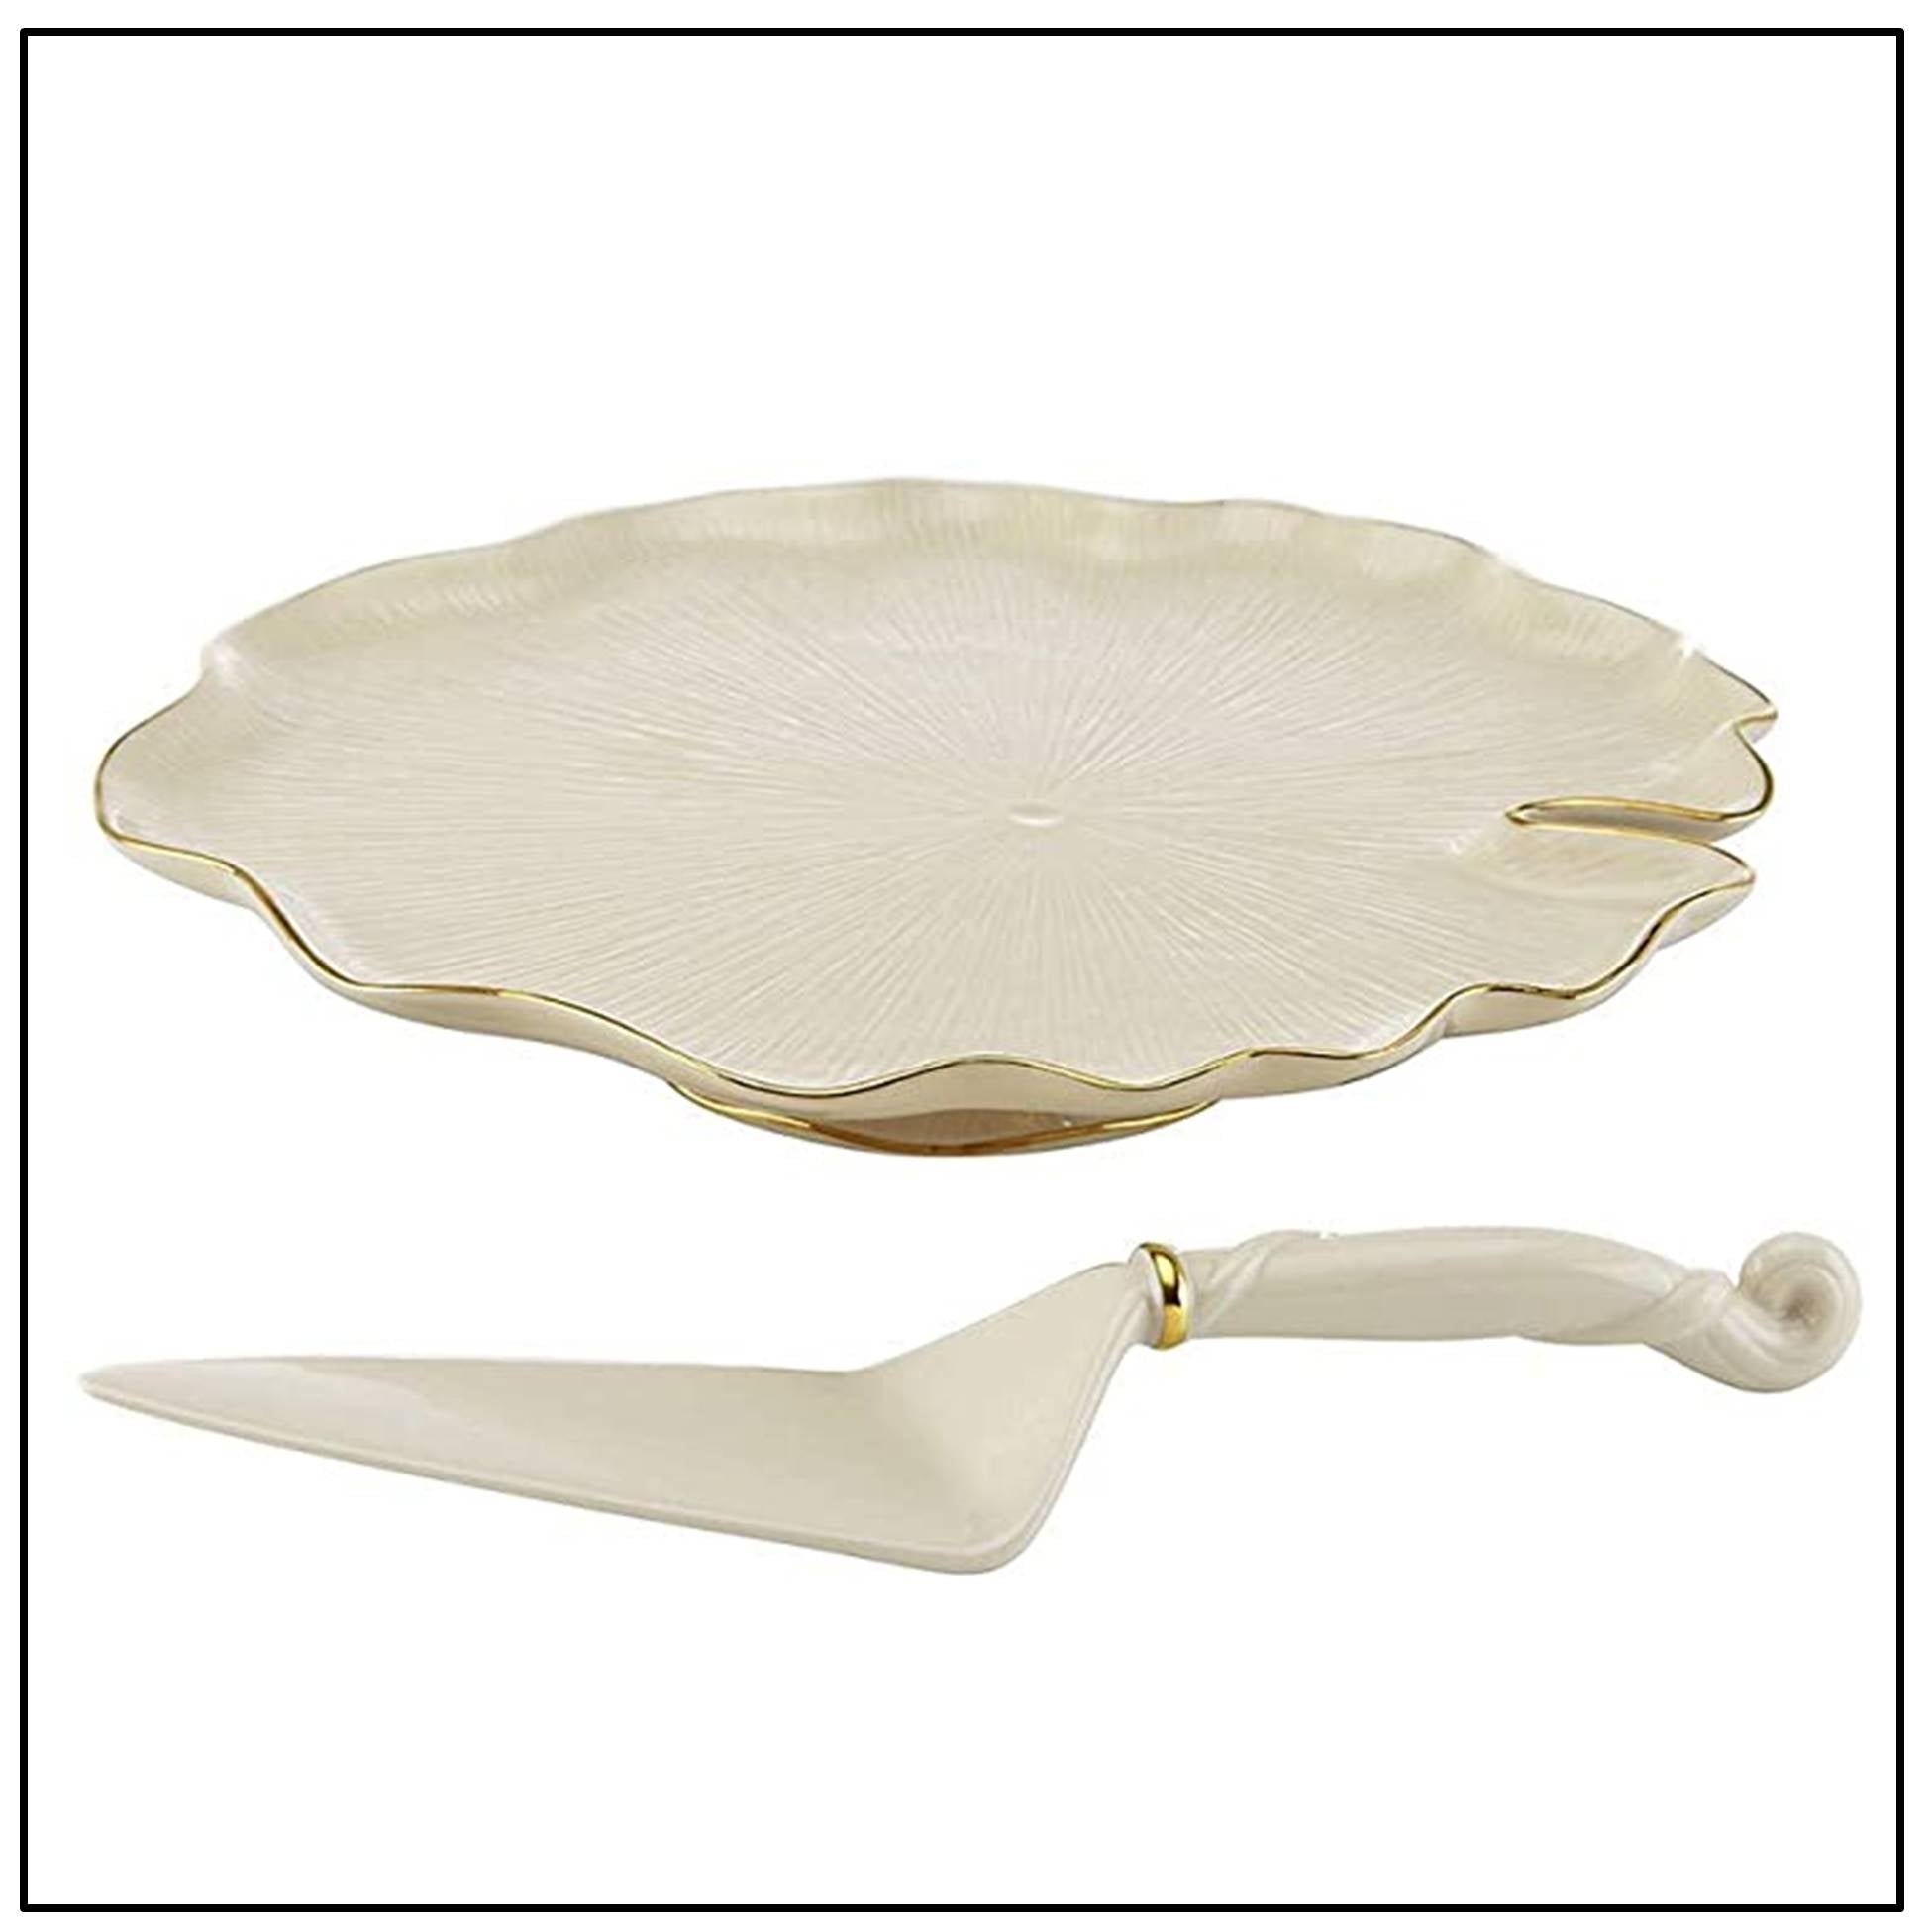 Eternal Leaf Cake Stand with Server